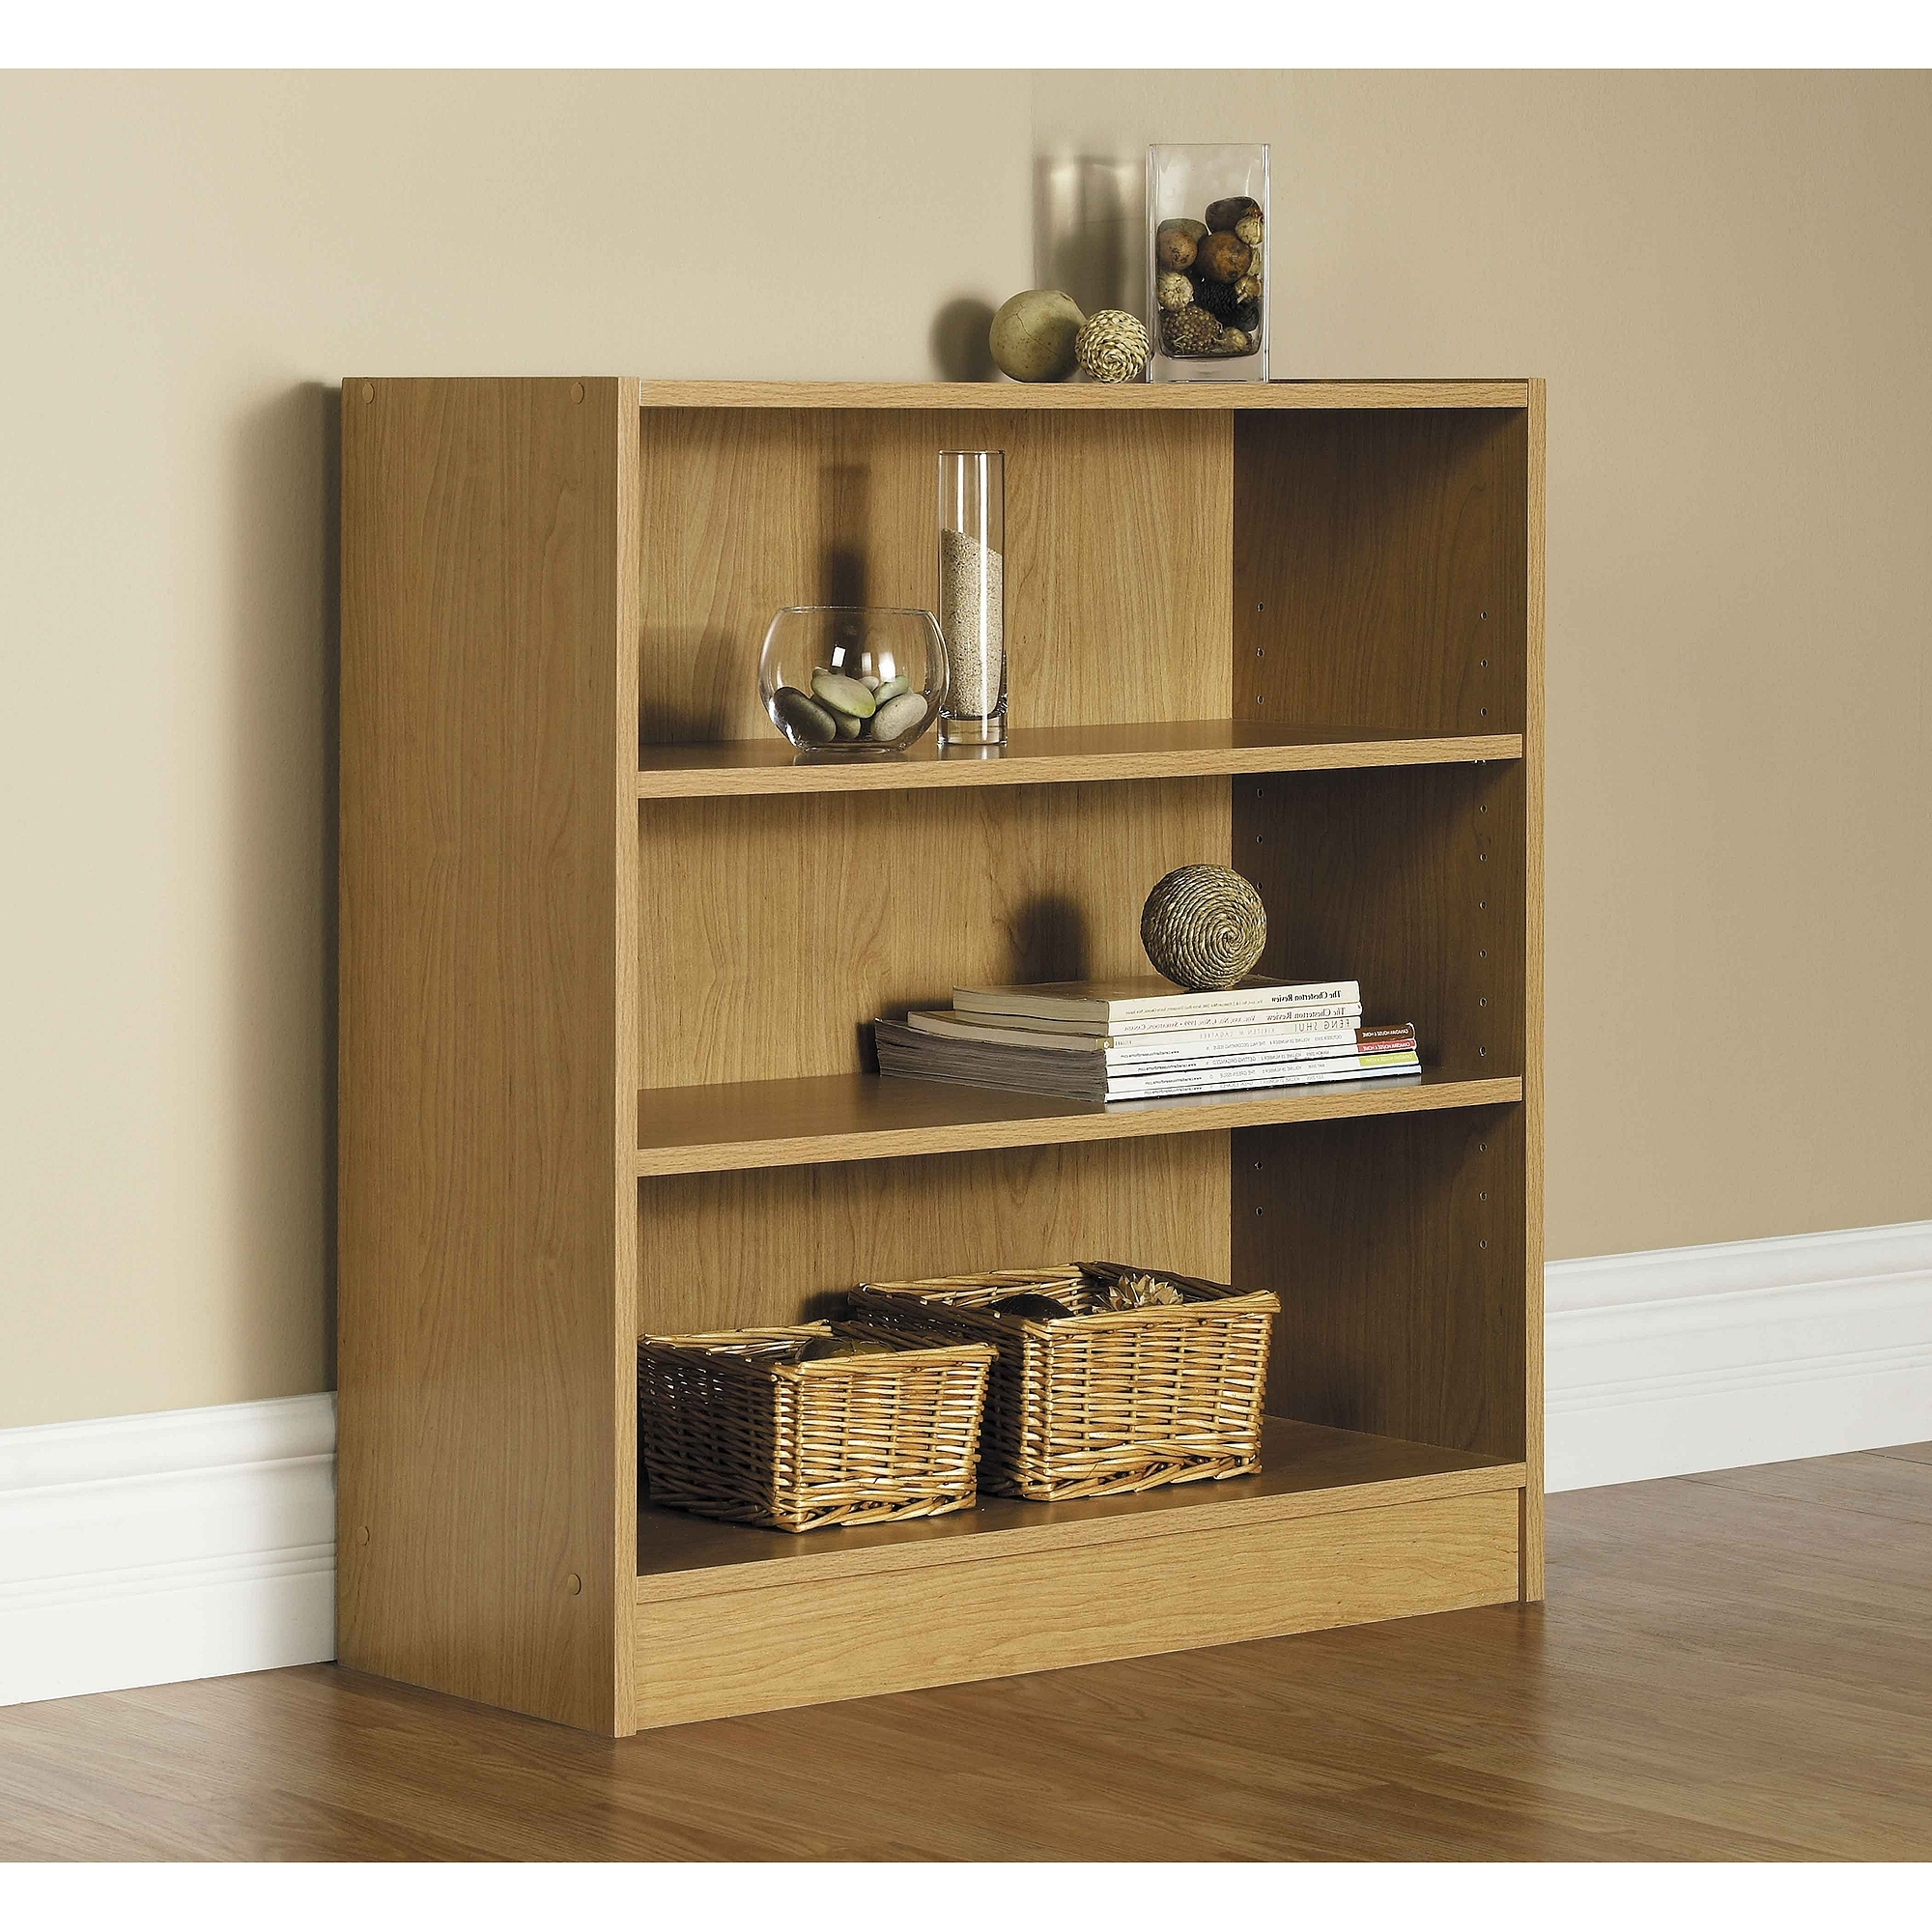 prod bookcase good qlt go to wid shelf alder hei p